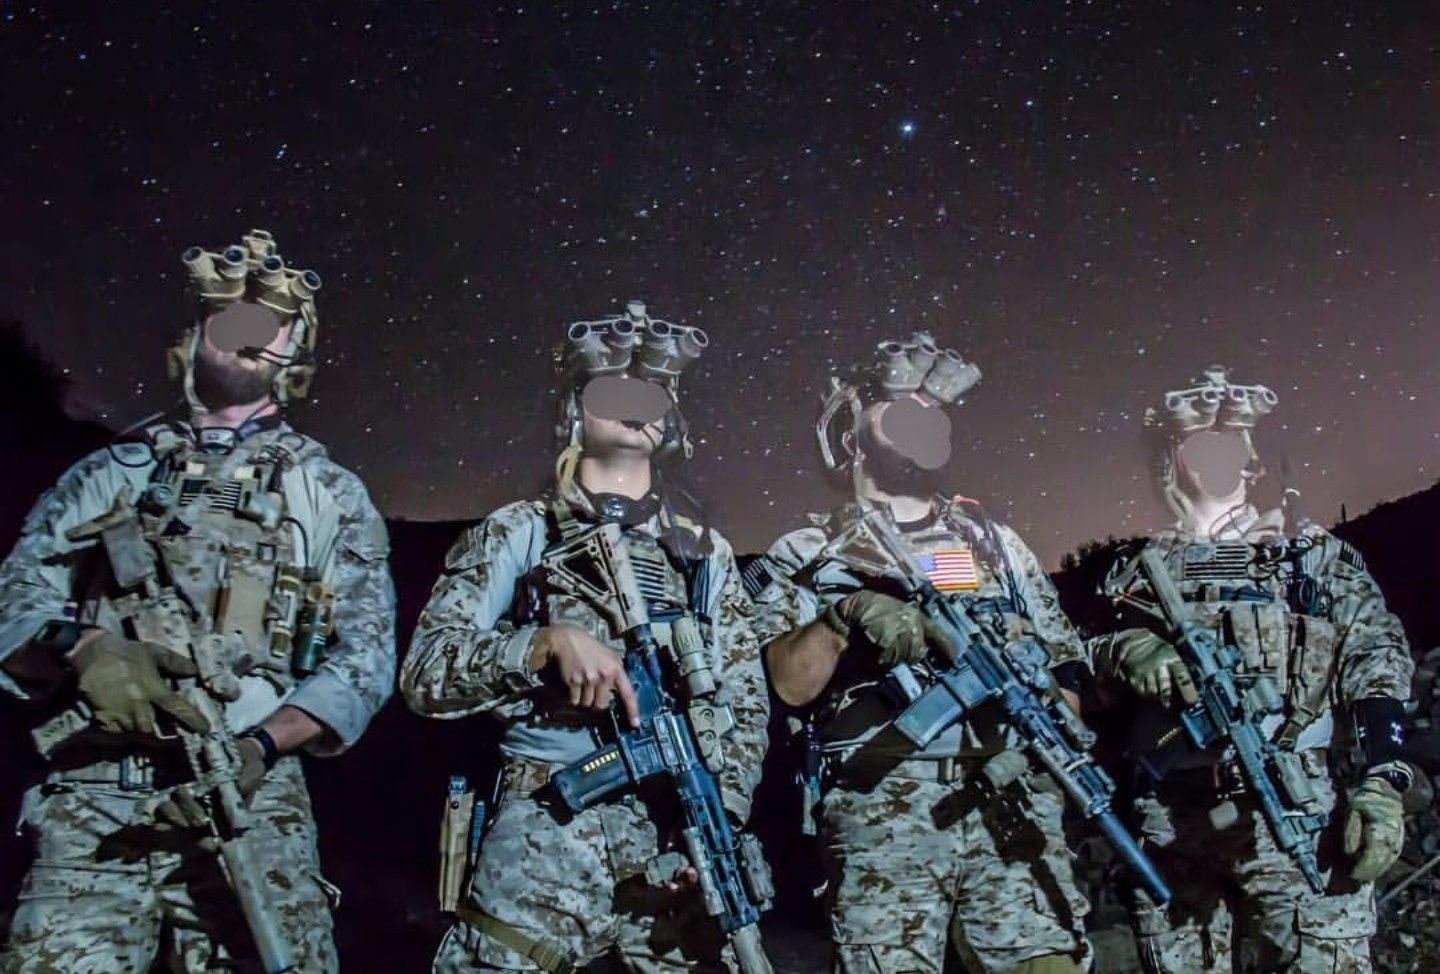 special operations team demo - HD1440×974